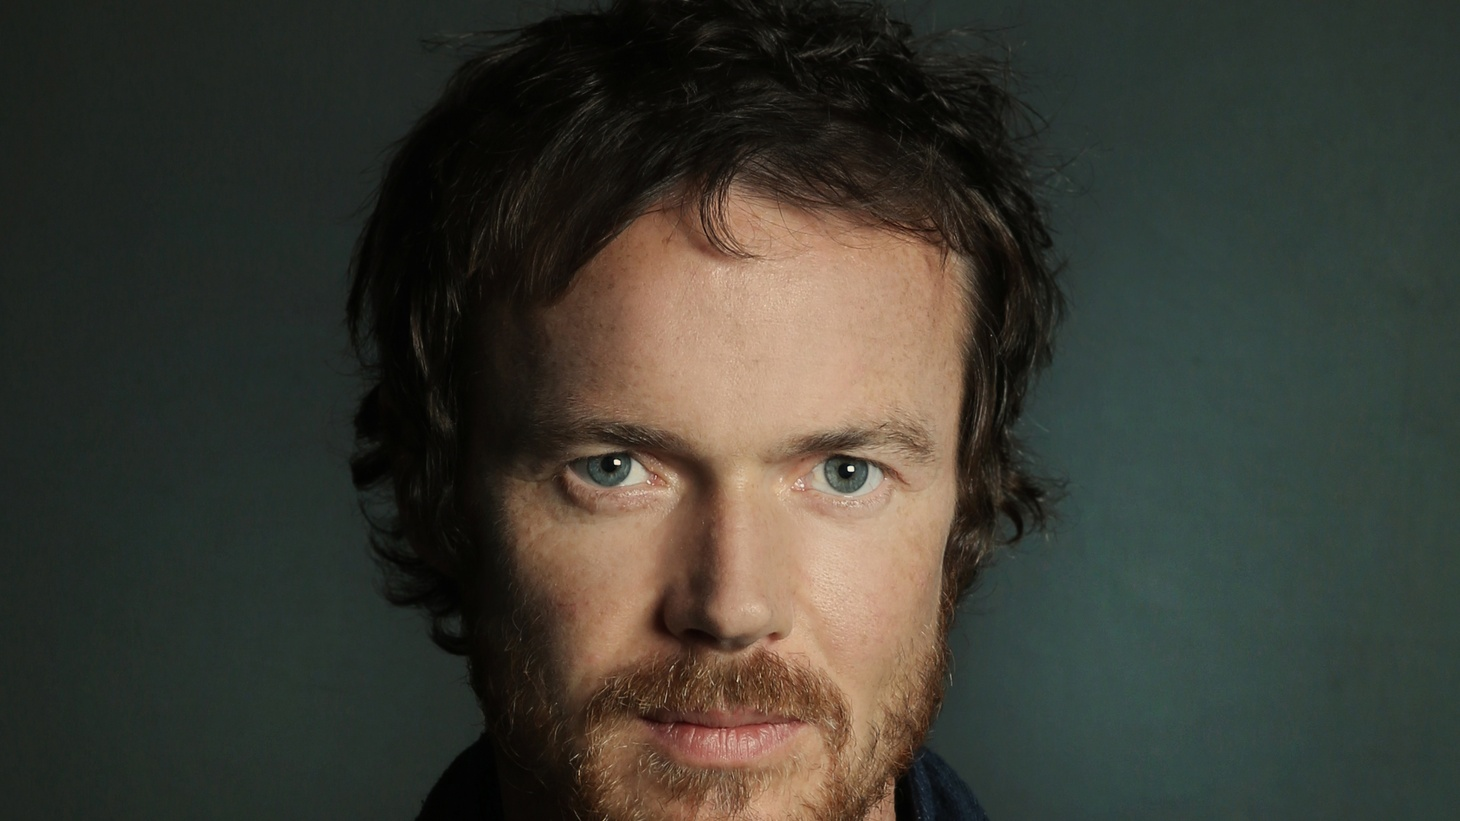 """After a 7 year hiatus, Damien Rice returns with a stunning new album produced by the inimitable Rick Rubin. Proving he can still break our hearts with beautiful songwriting, here is """"I Don't Want To Change You""""."""